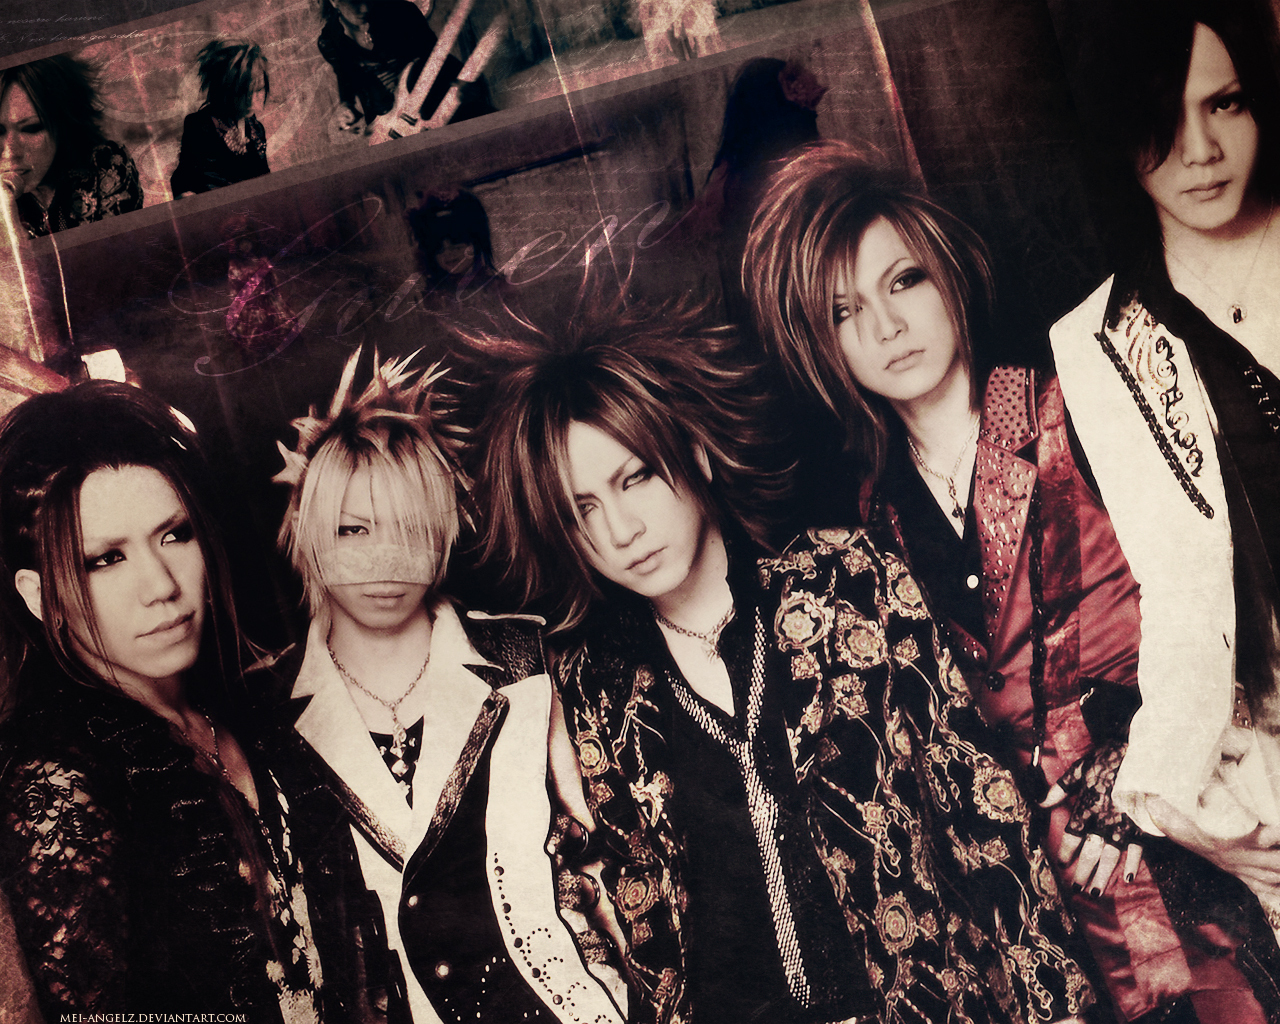 Gazette The Gazette Wallpaper 10726777 Fanpop